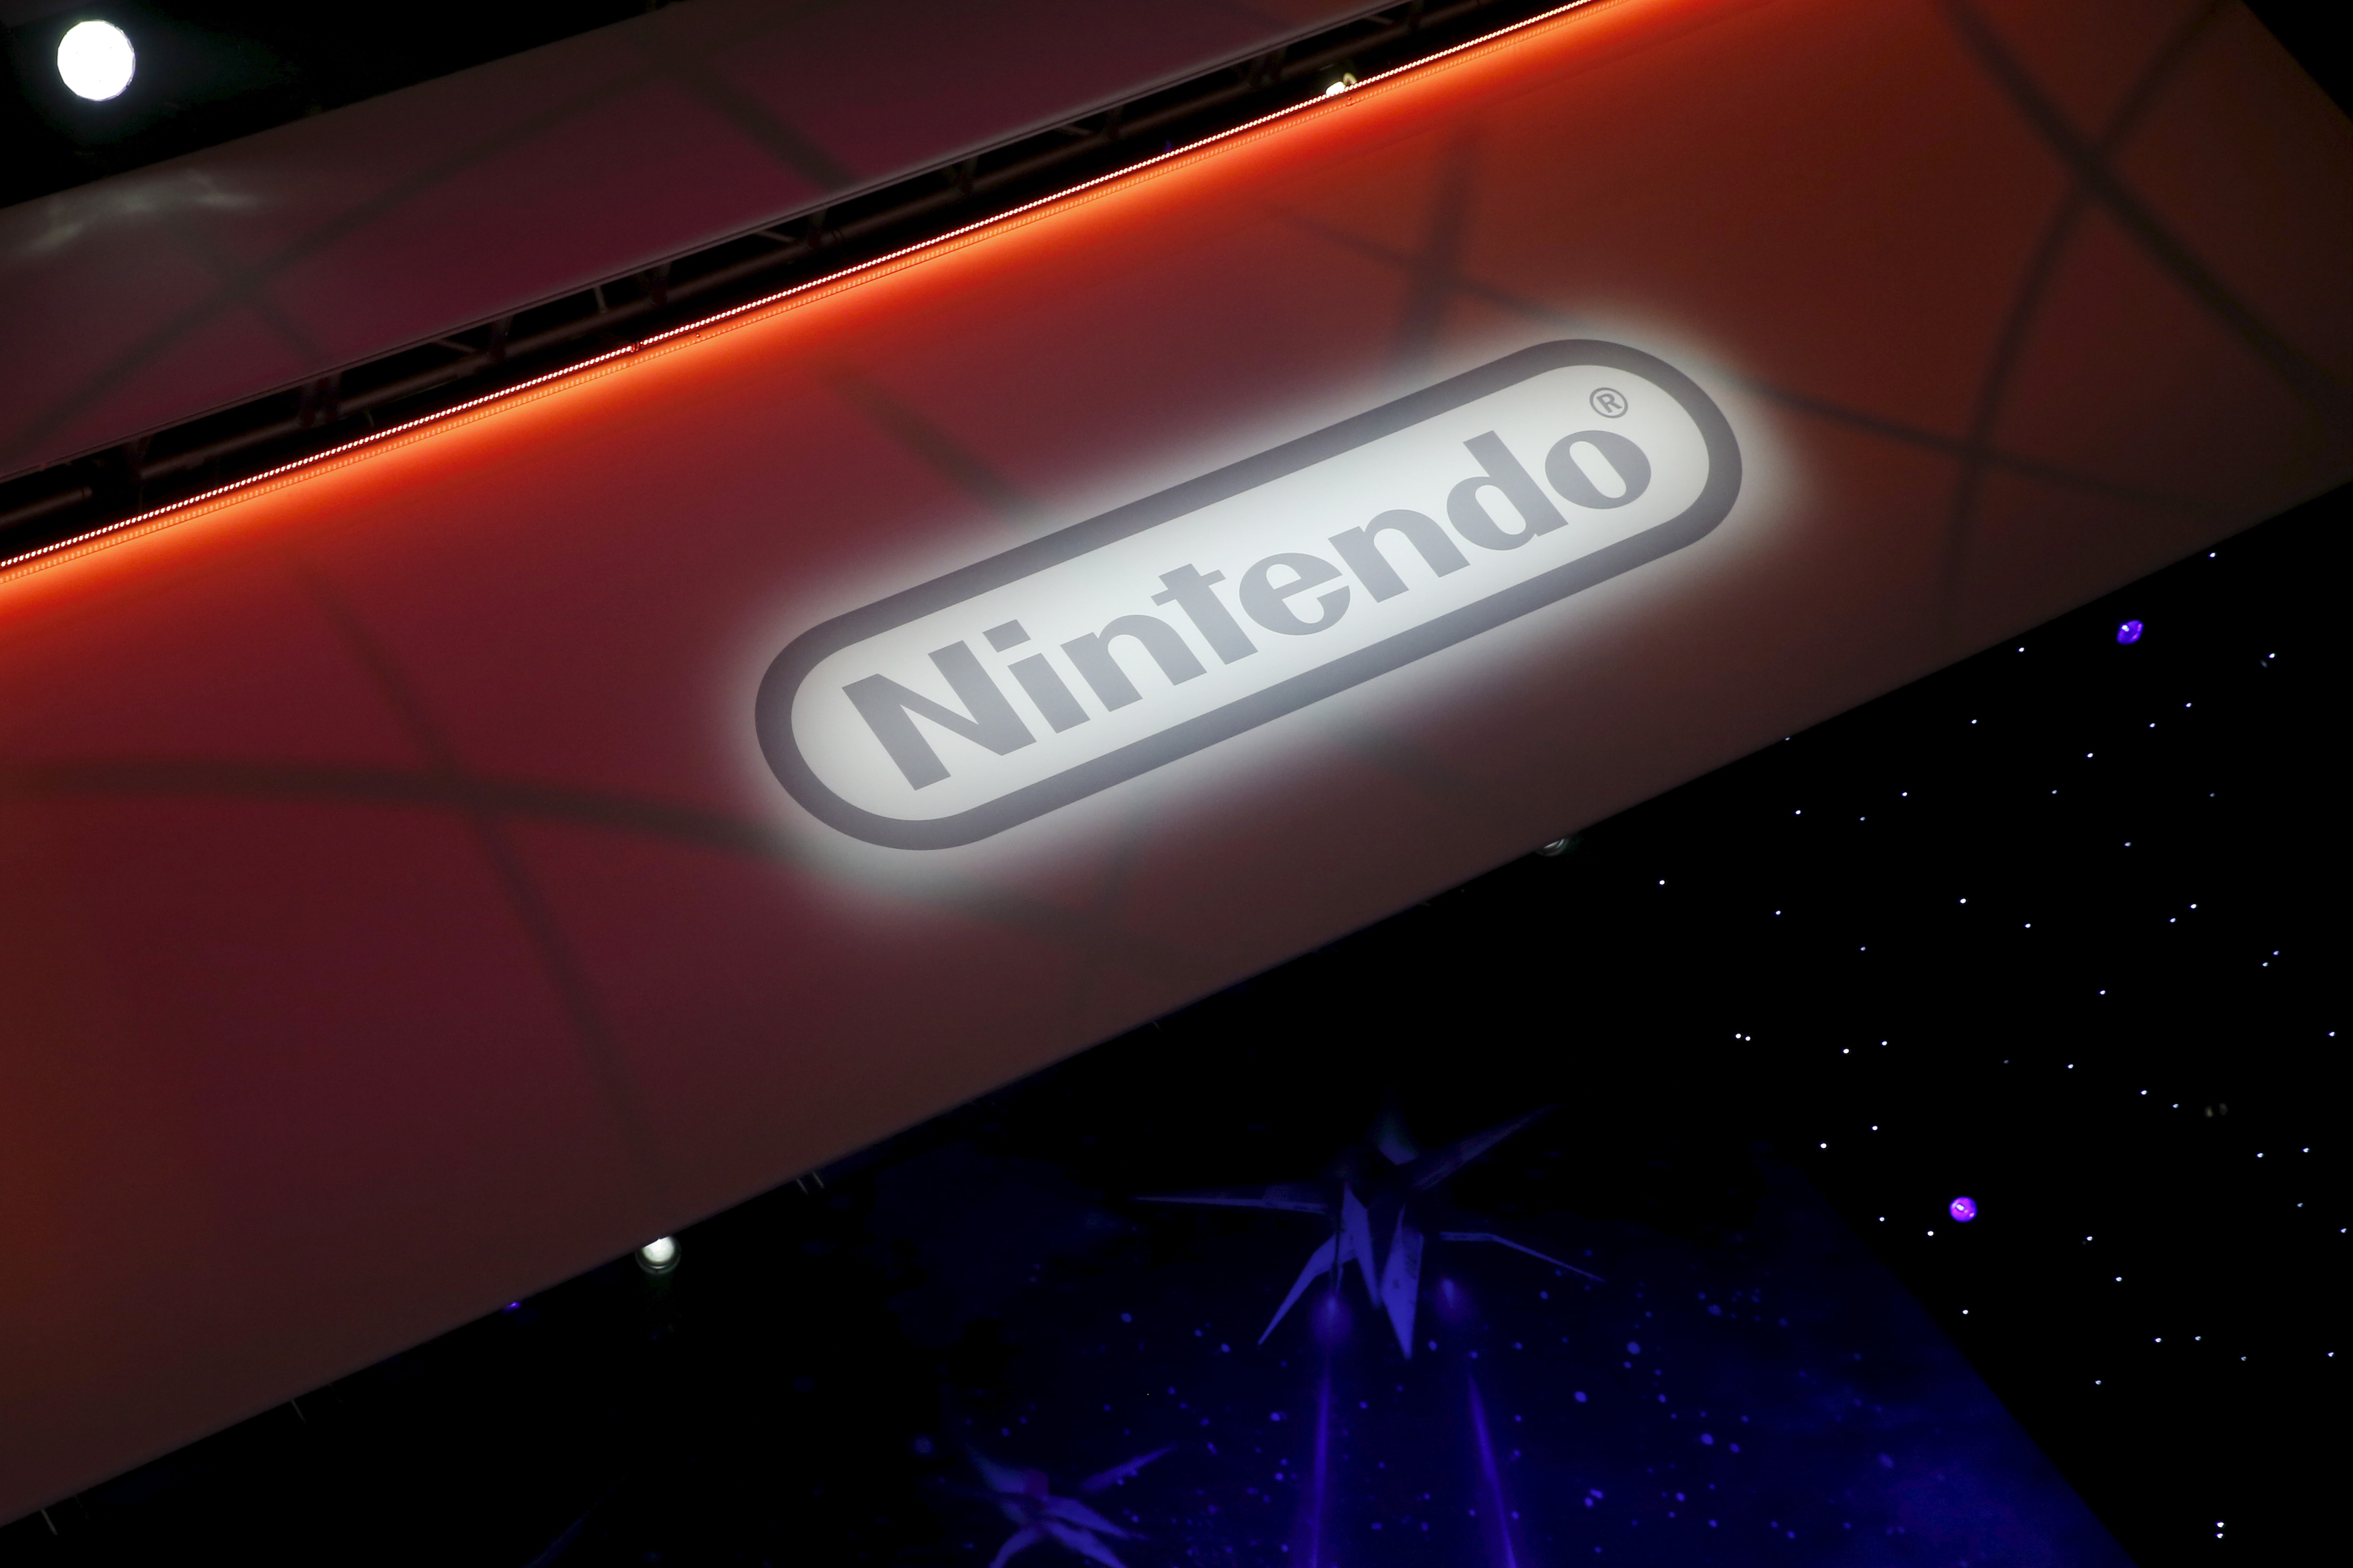 A Nintendo video game logo is seen at the Electronic Entertainment Expo, or E3, in Los Angeles, California, United States, June 17, 2015. Virtual reality gaming, once a distant concept, became the new battleground at this year's E3 industry convention, with developers seeking to win over fans with their immersive headsets and accessories. REUTERS/Lucy Nicholson